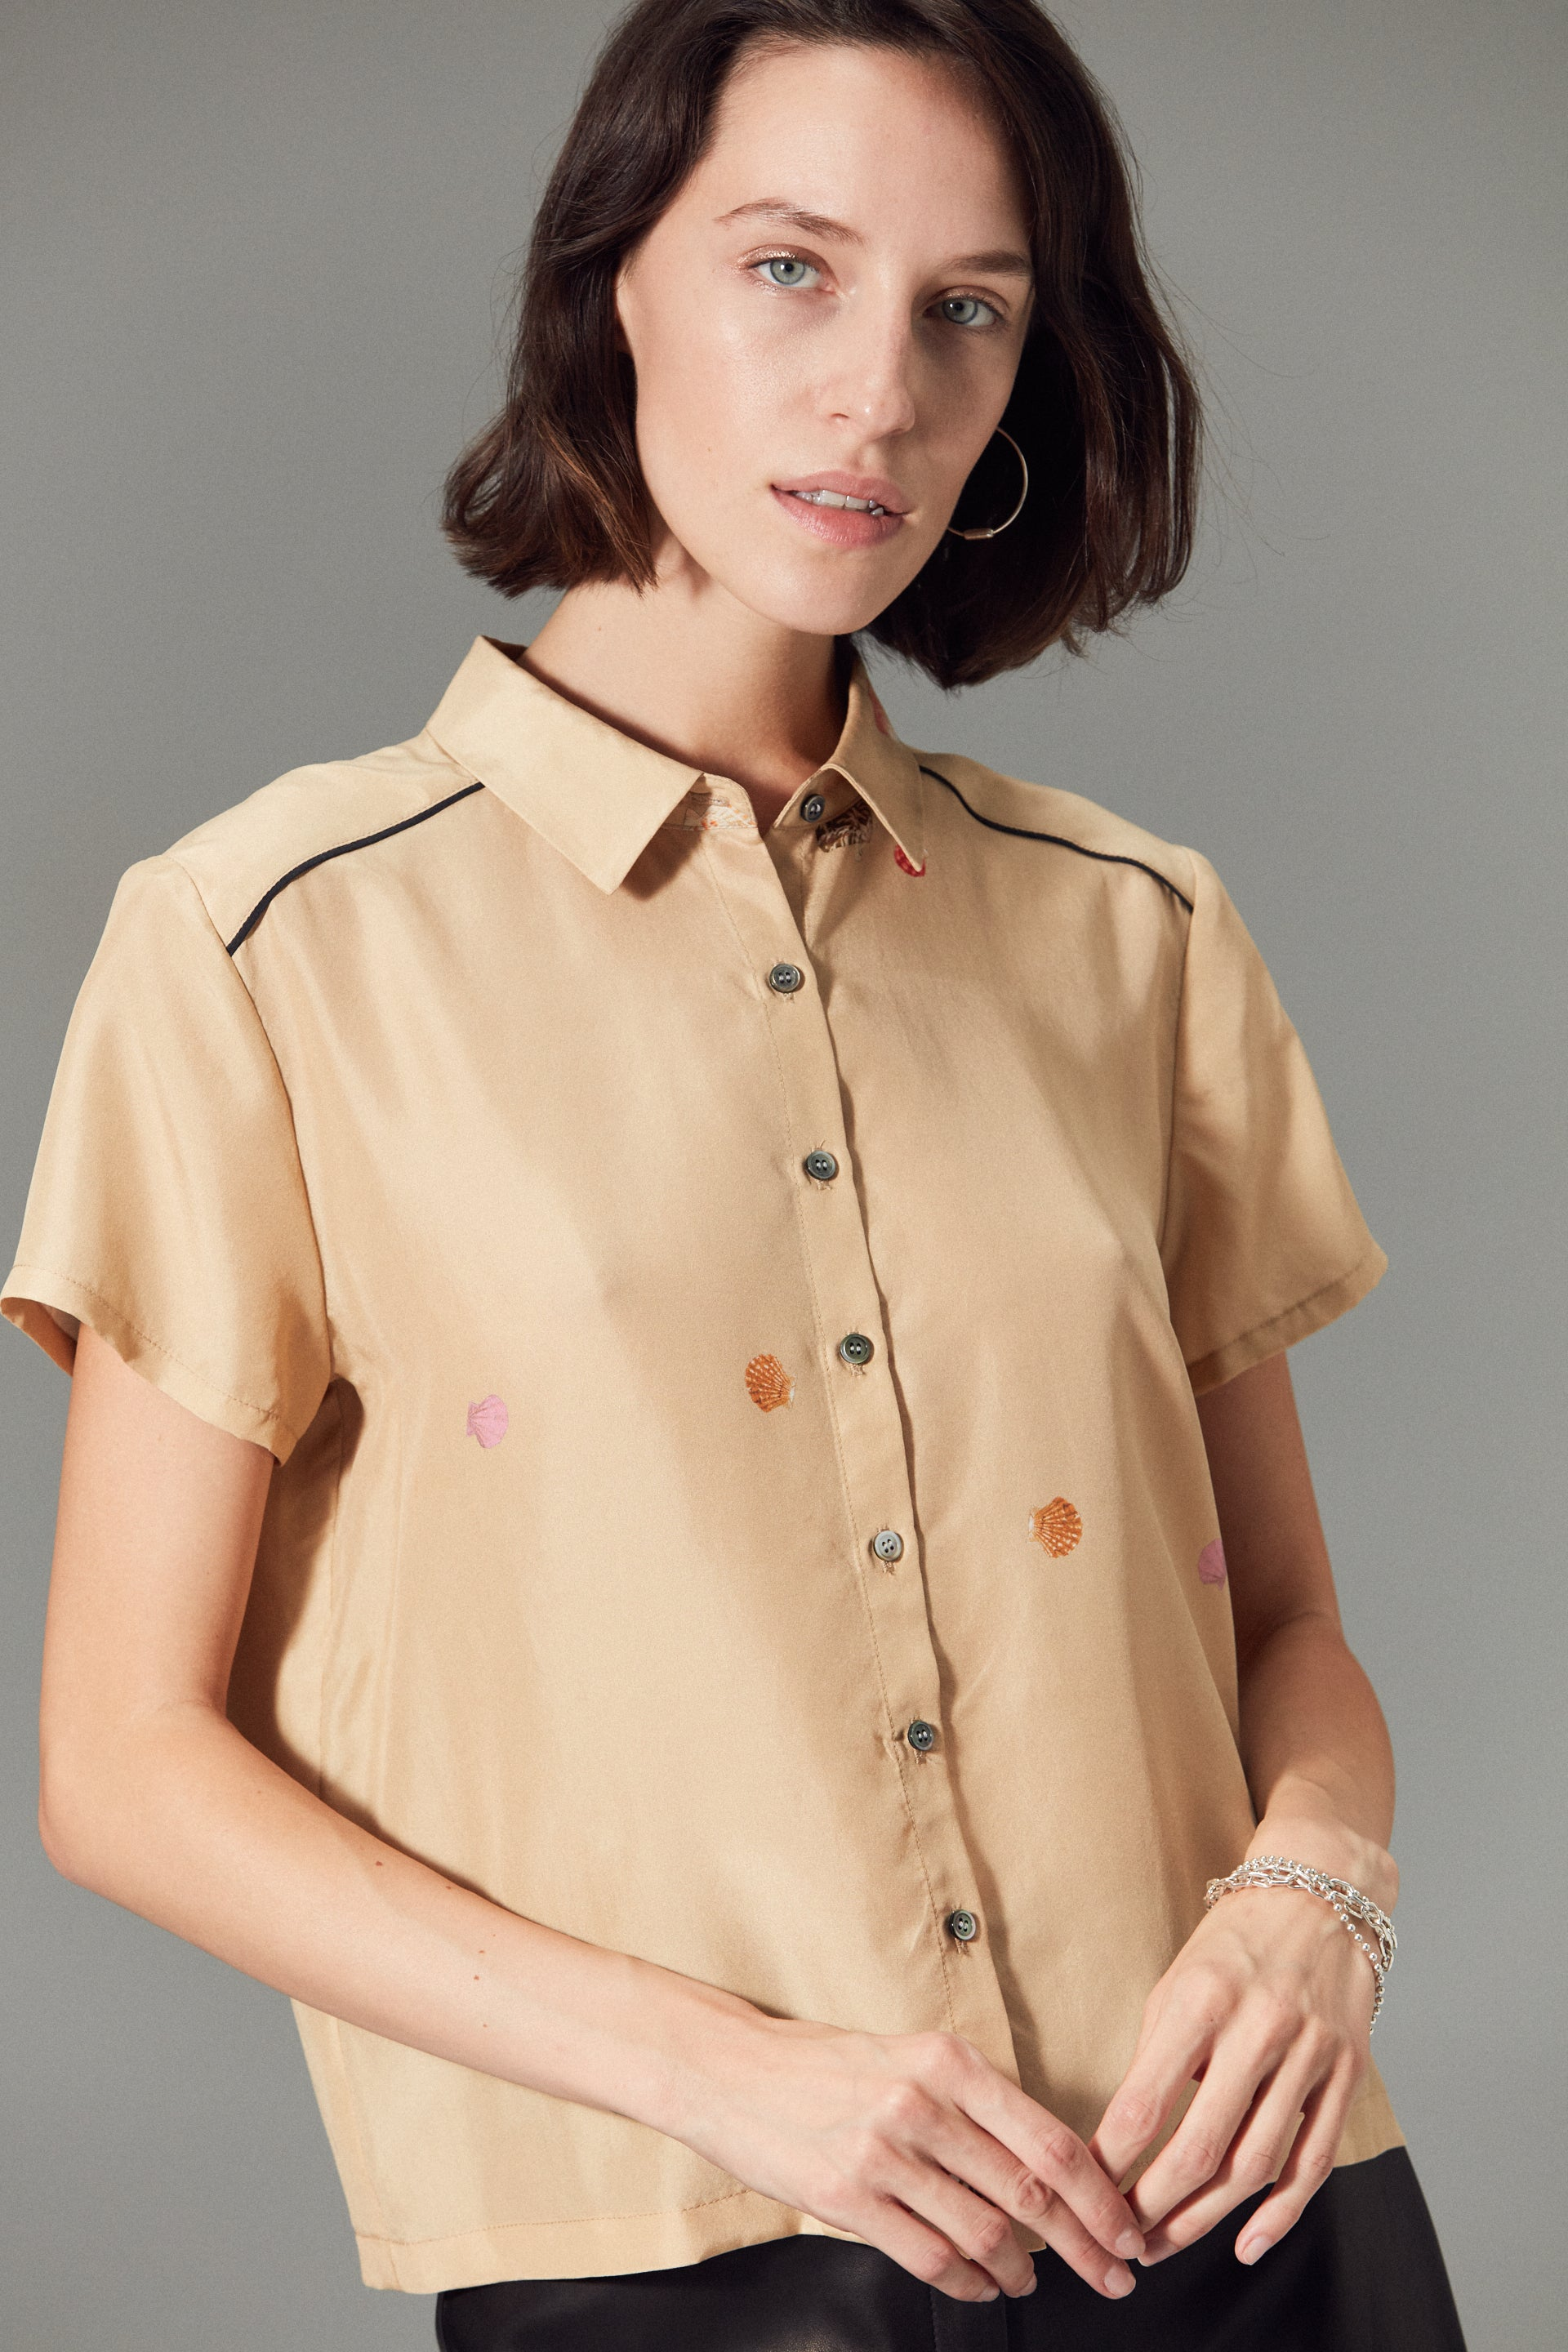 Honolulu Silk Top Khaki Shell